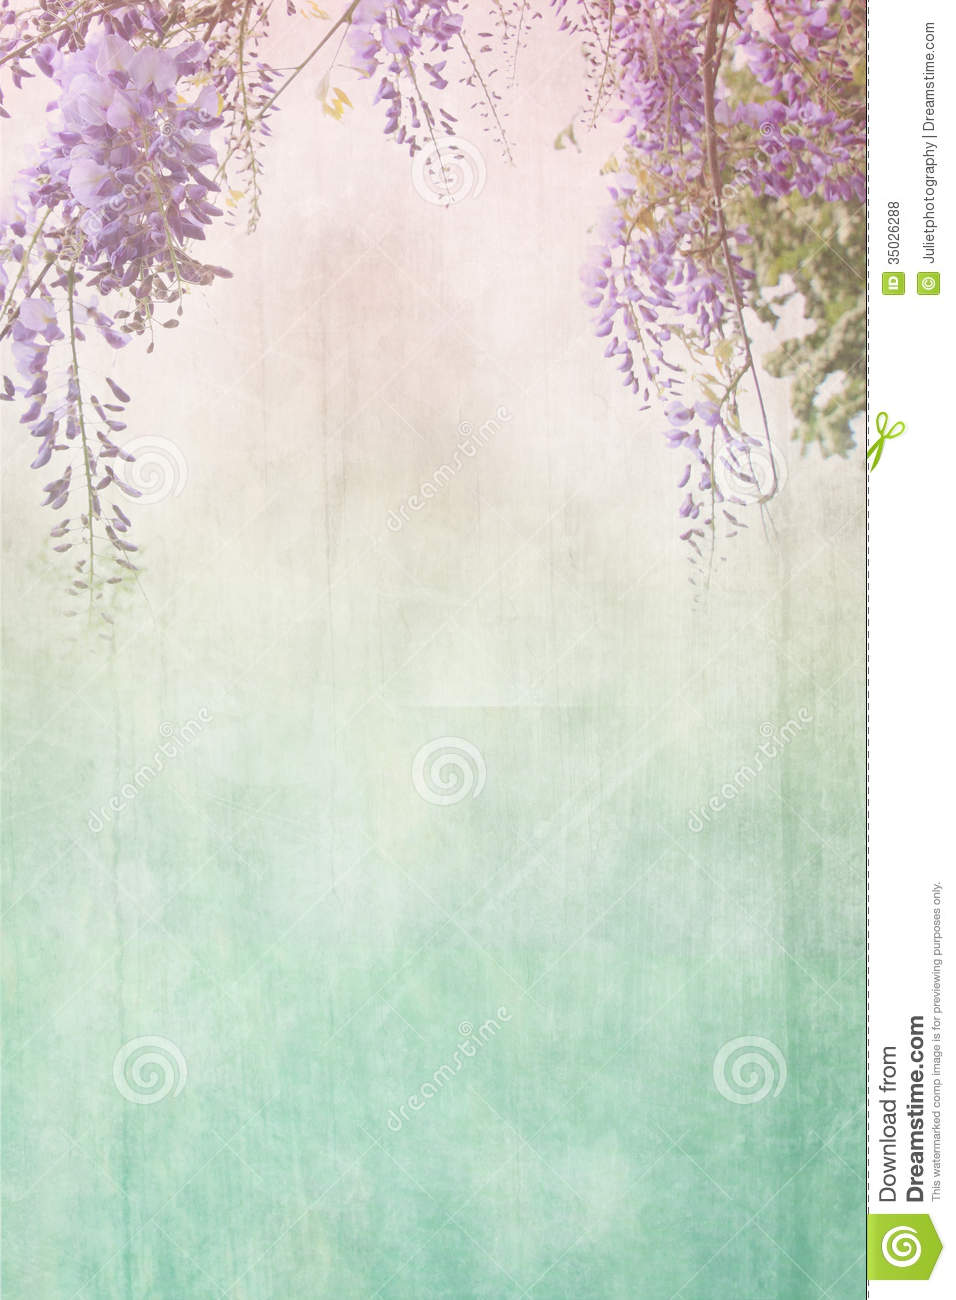 grungy background with floral border stock photo